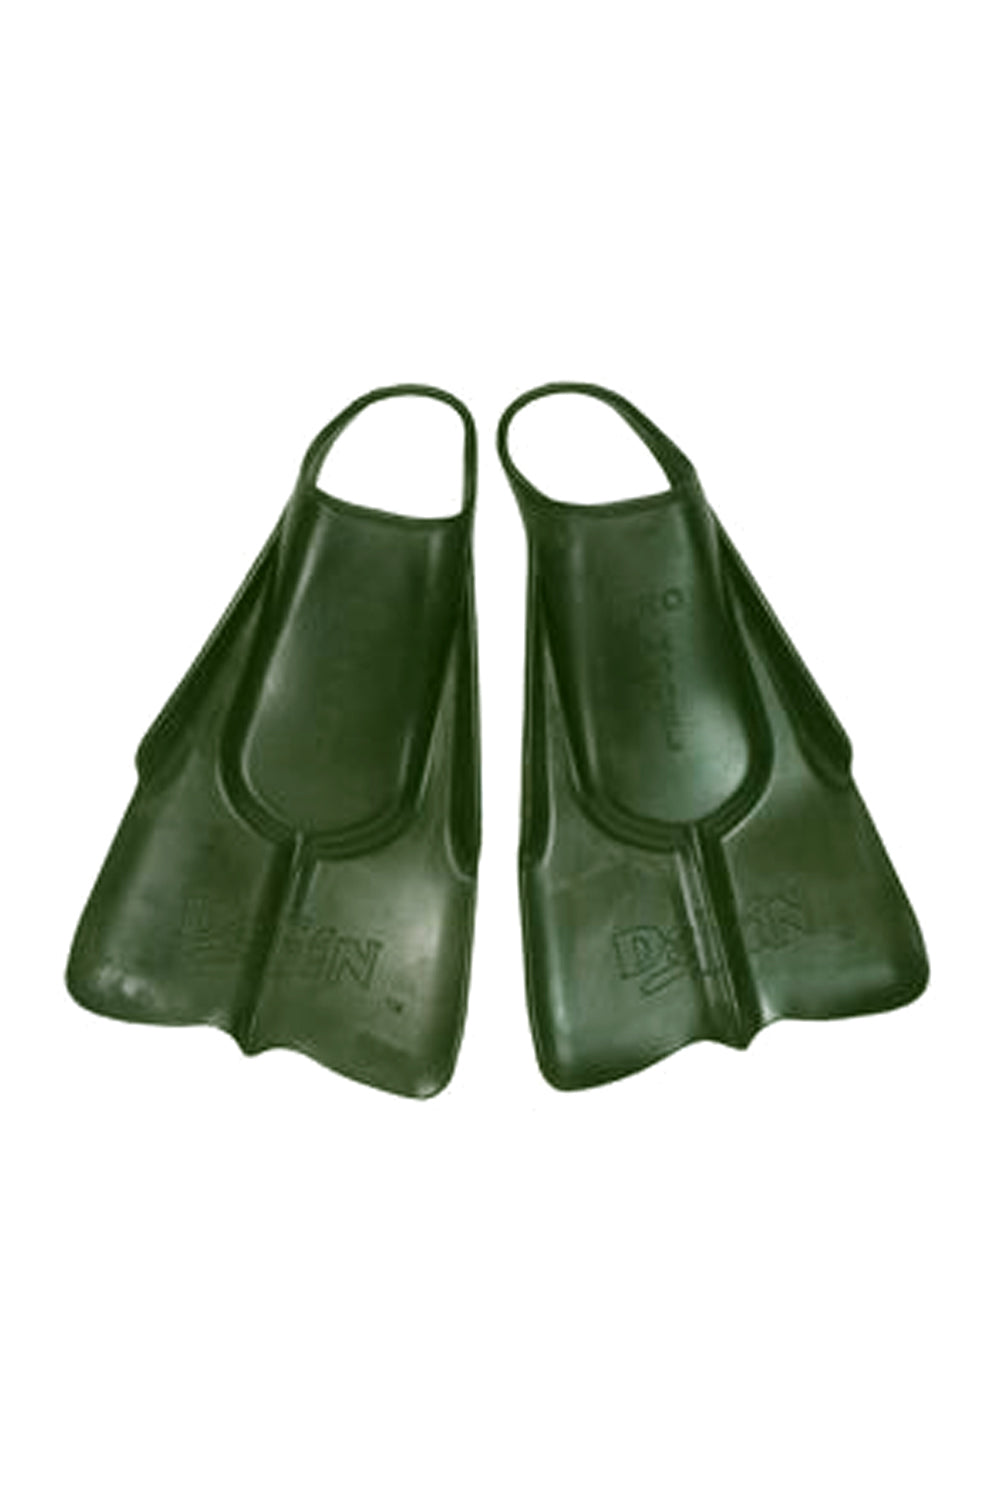 Da Fin Swimfins - Green